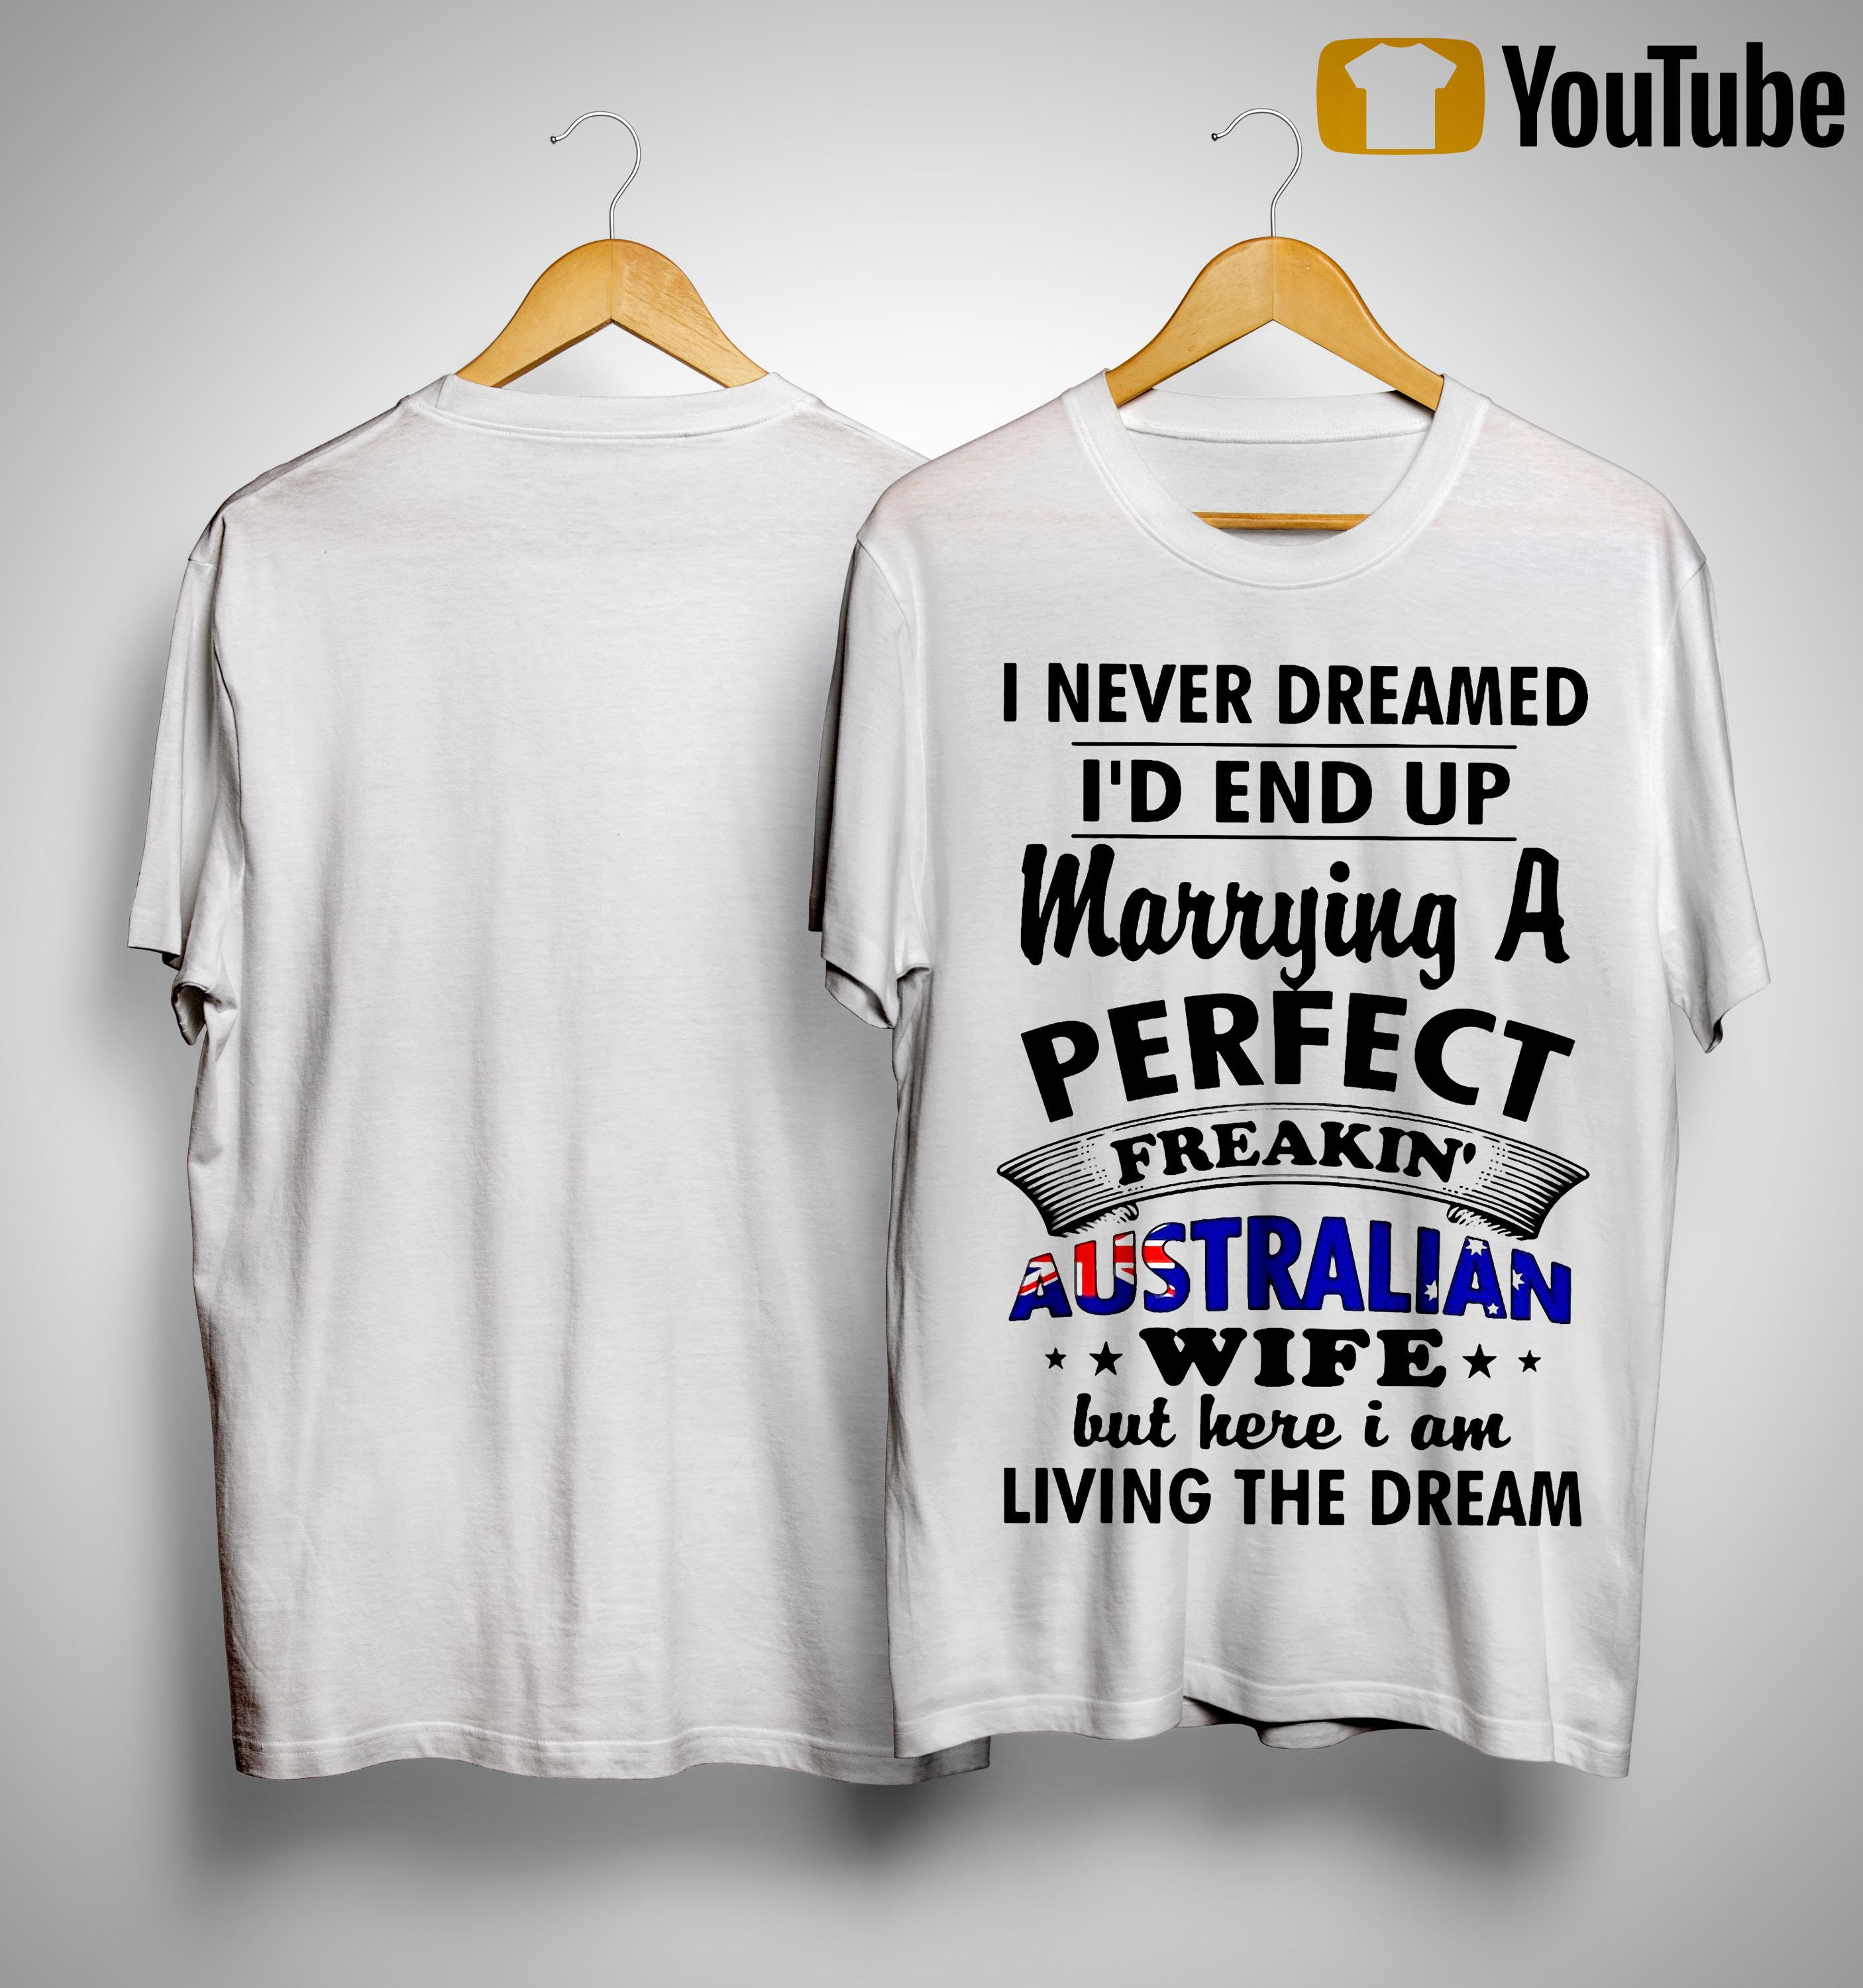 I Never Dreamed I'd End Up Marrying A Perfect Freakin' Austrailian Wife Shirt